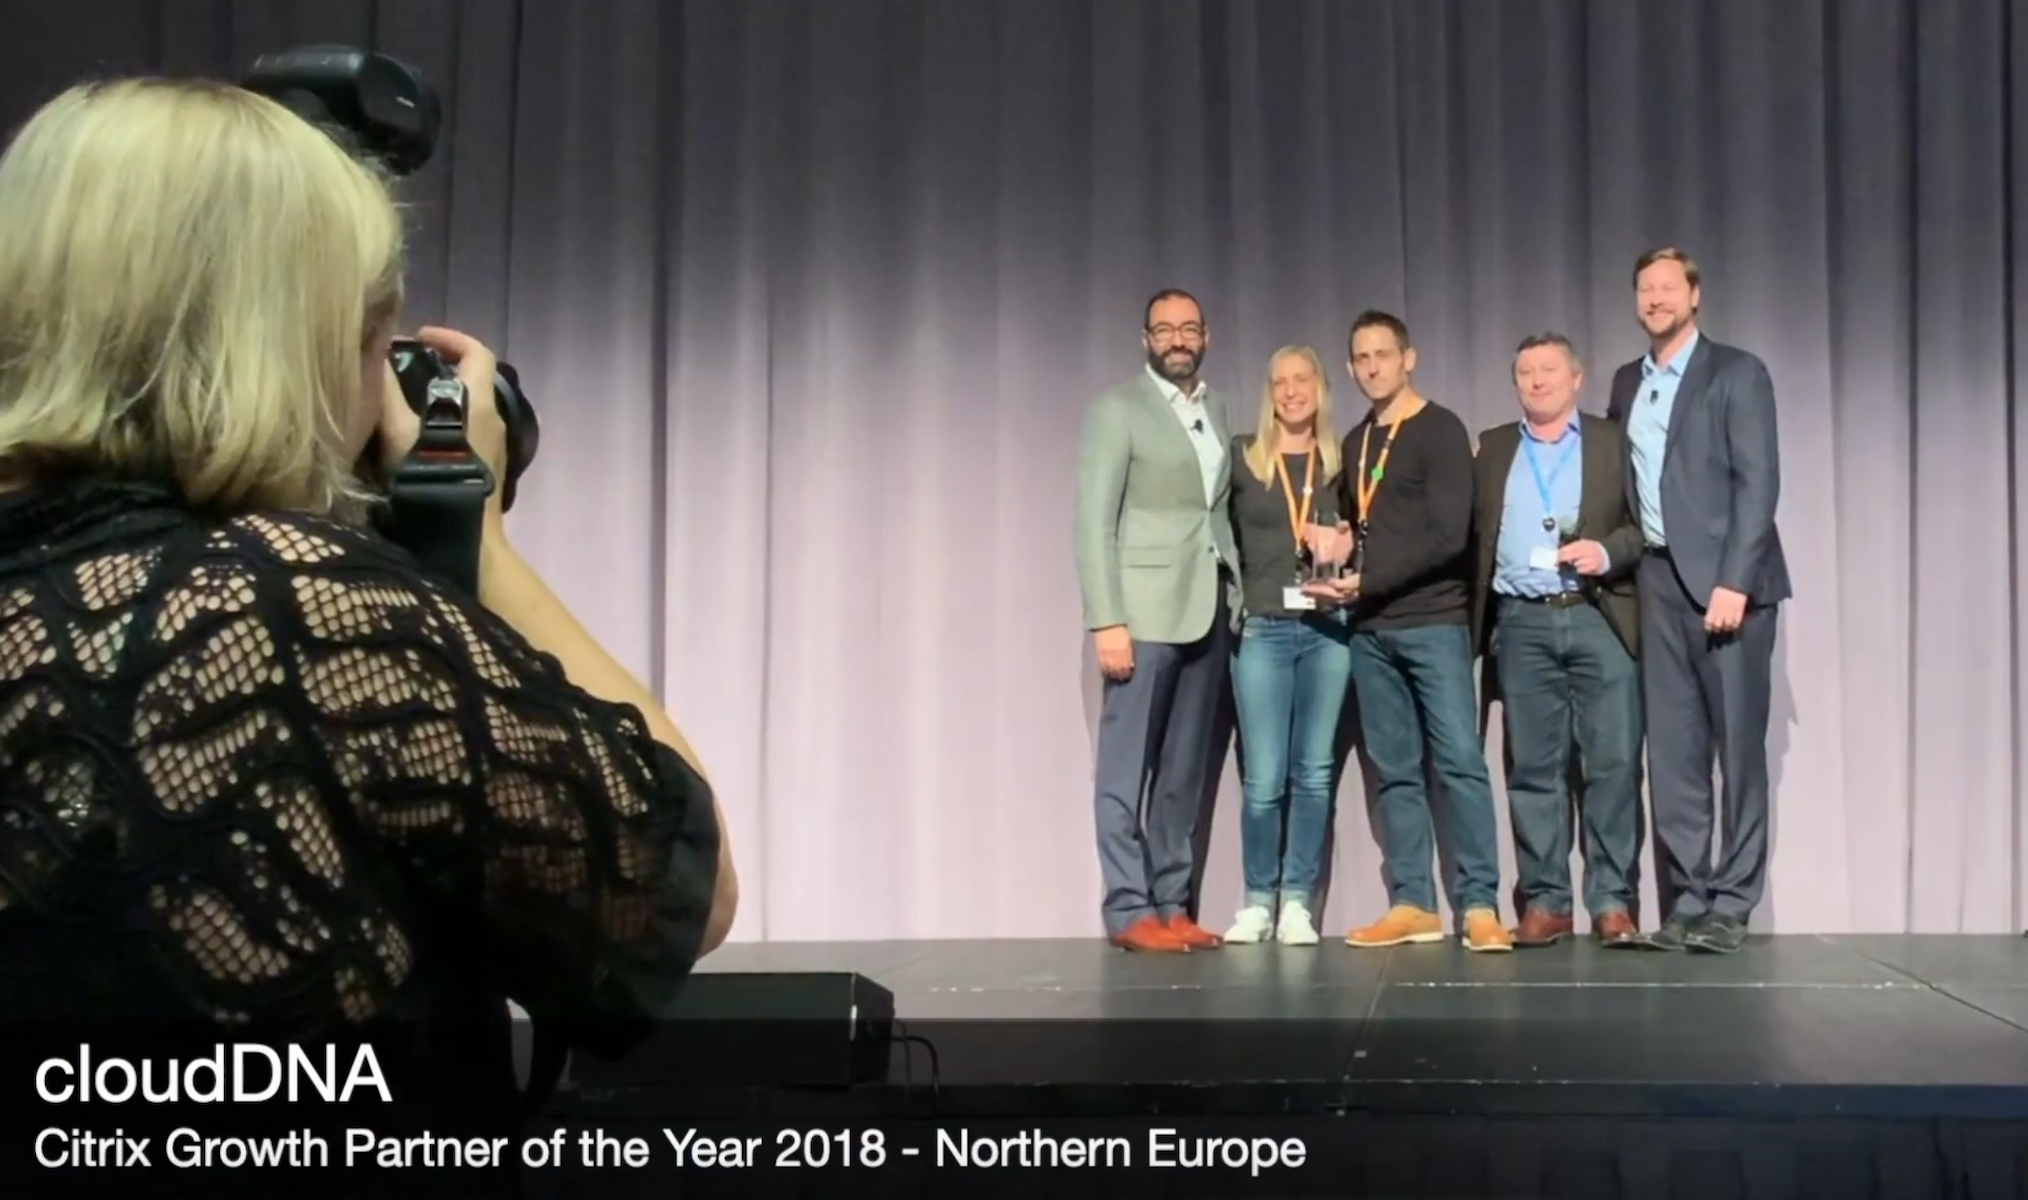 Citrix Growth Partner of the Year 2018 Northern Europe